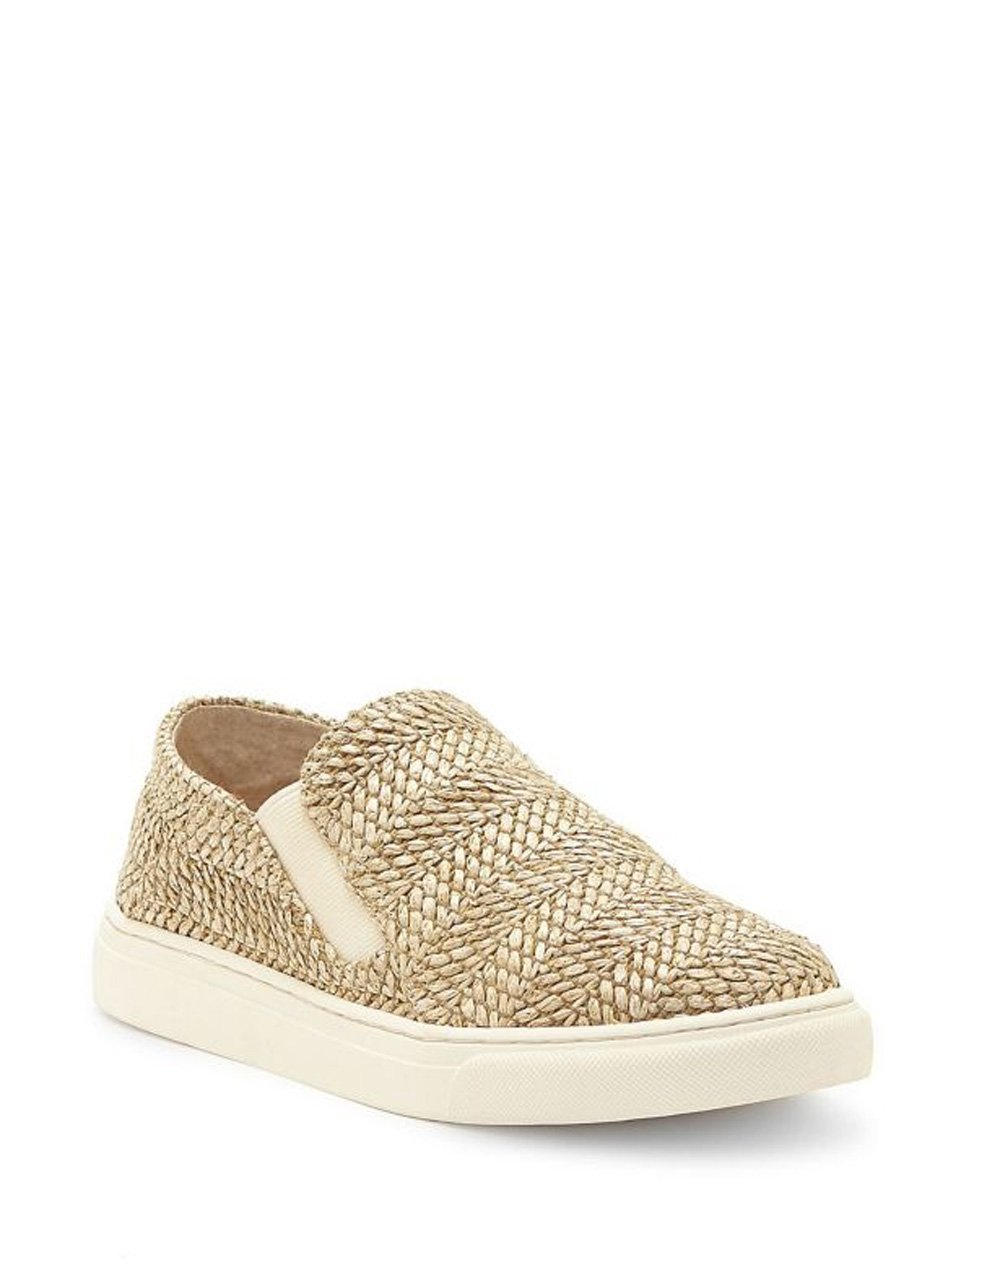 Lucky Brand Women's Lailom Natural 7.5 M US